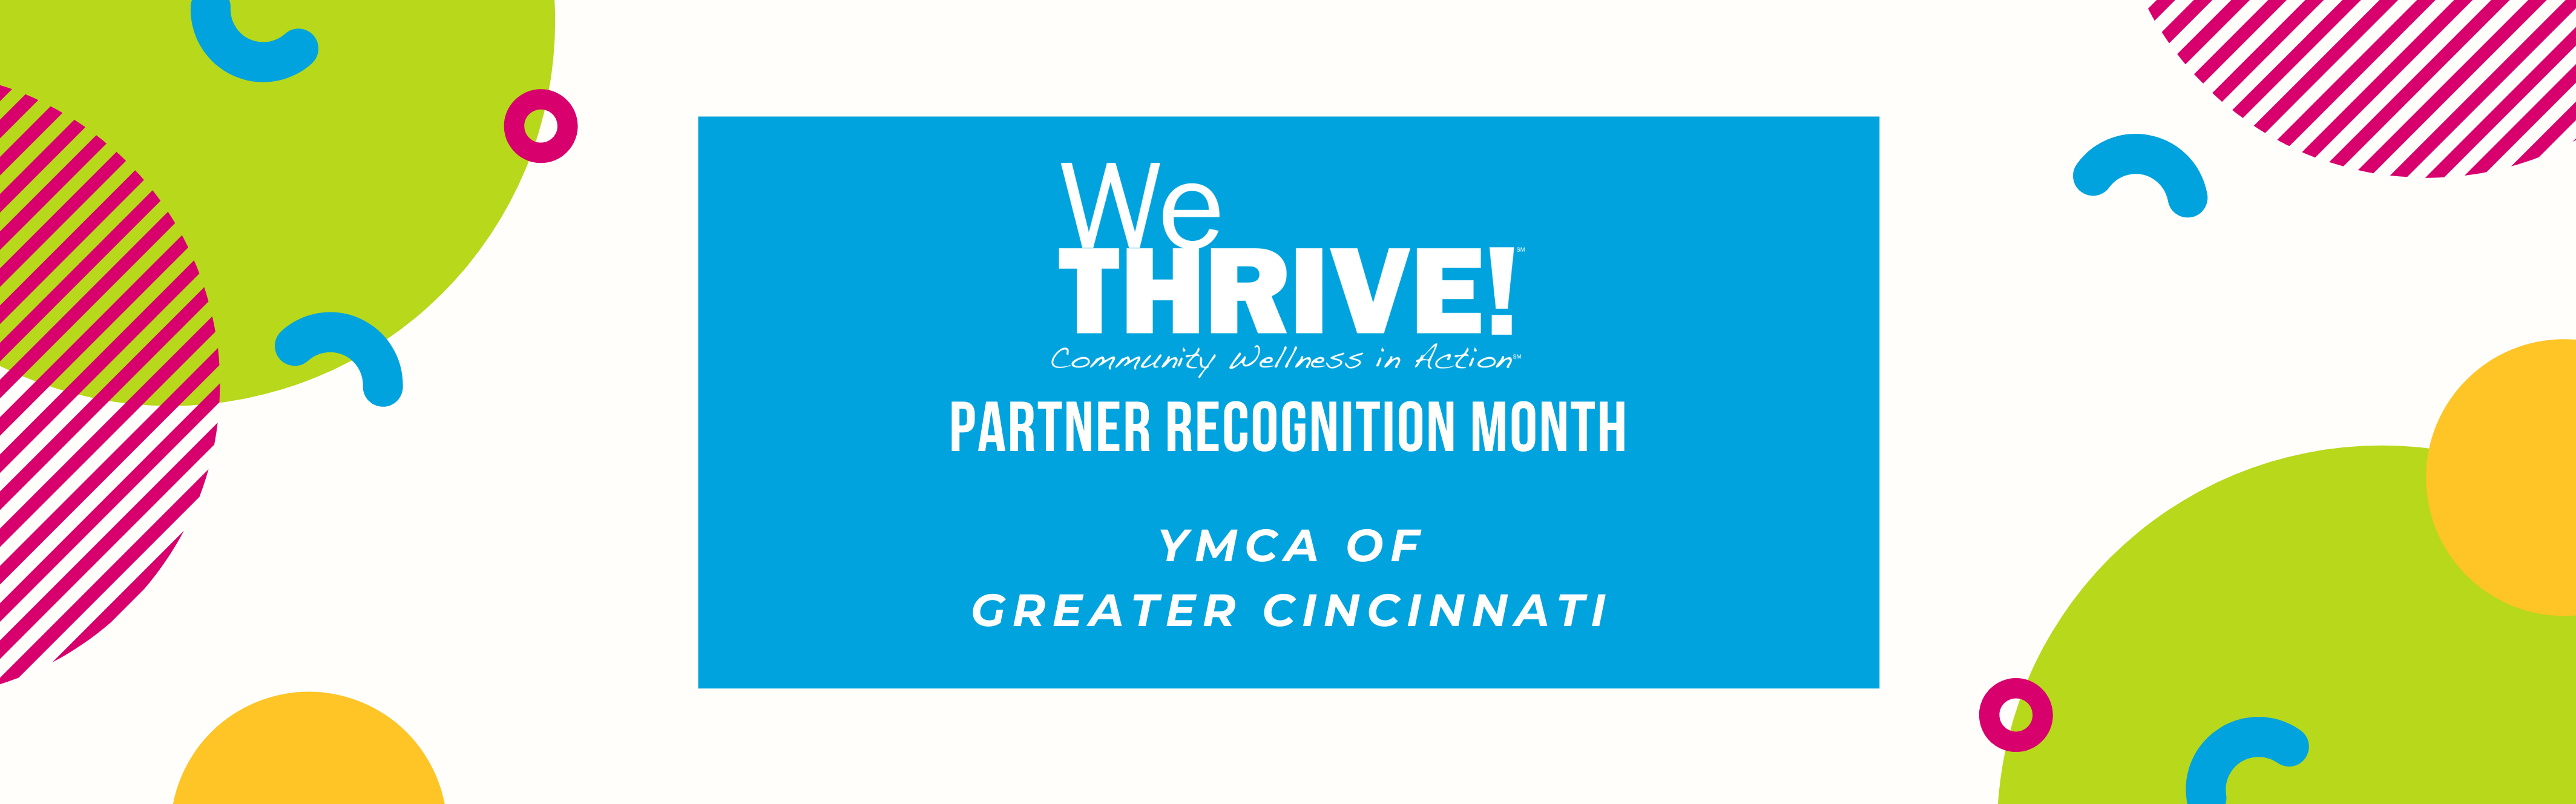 image at top of story says We Thrive partner recognition month: YMCA of Greater Cincinnati